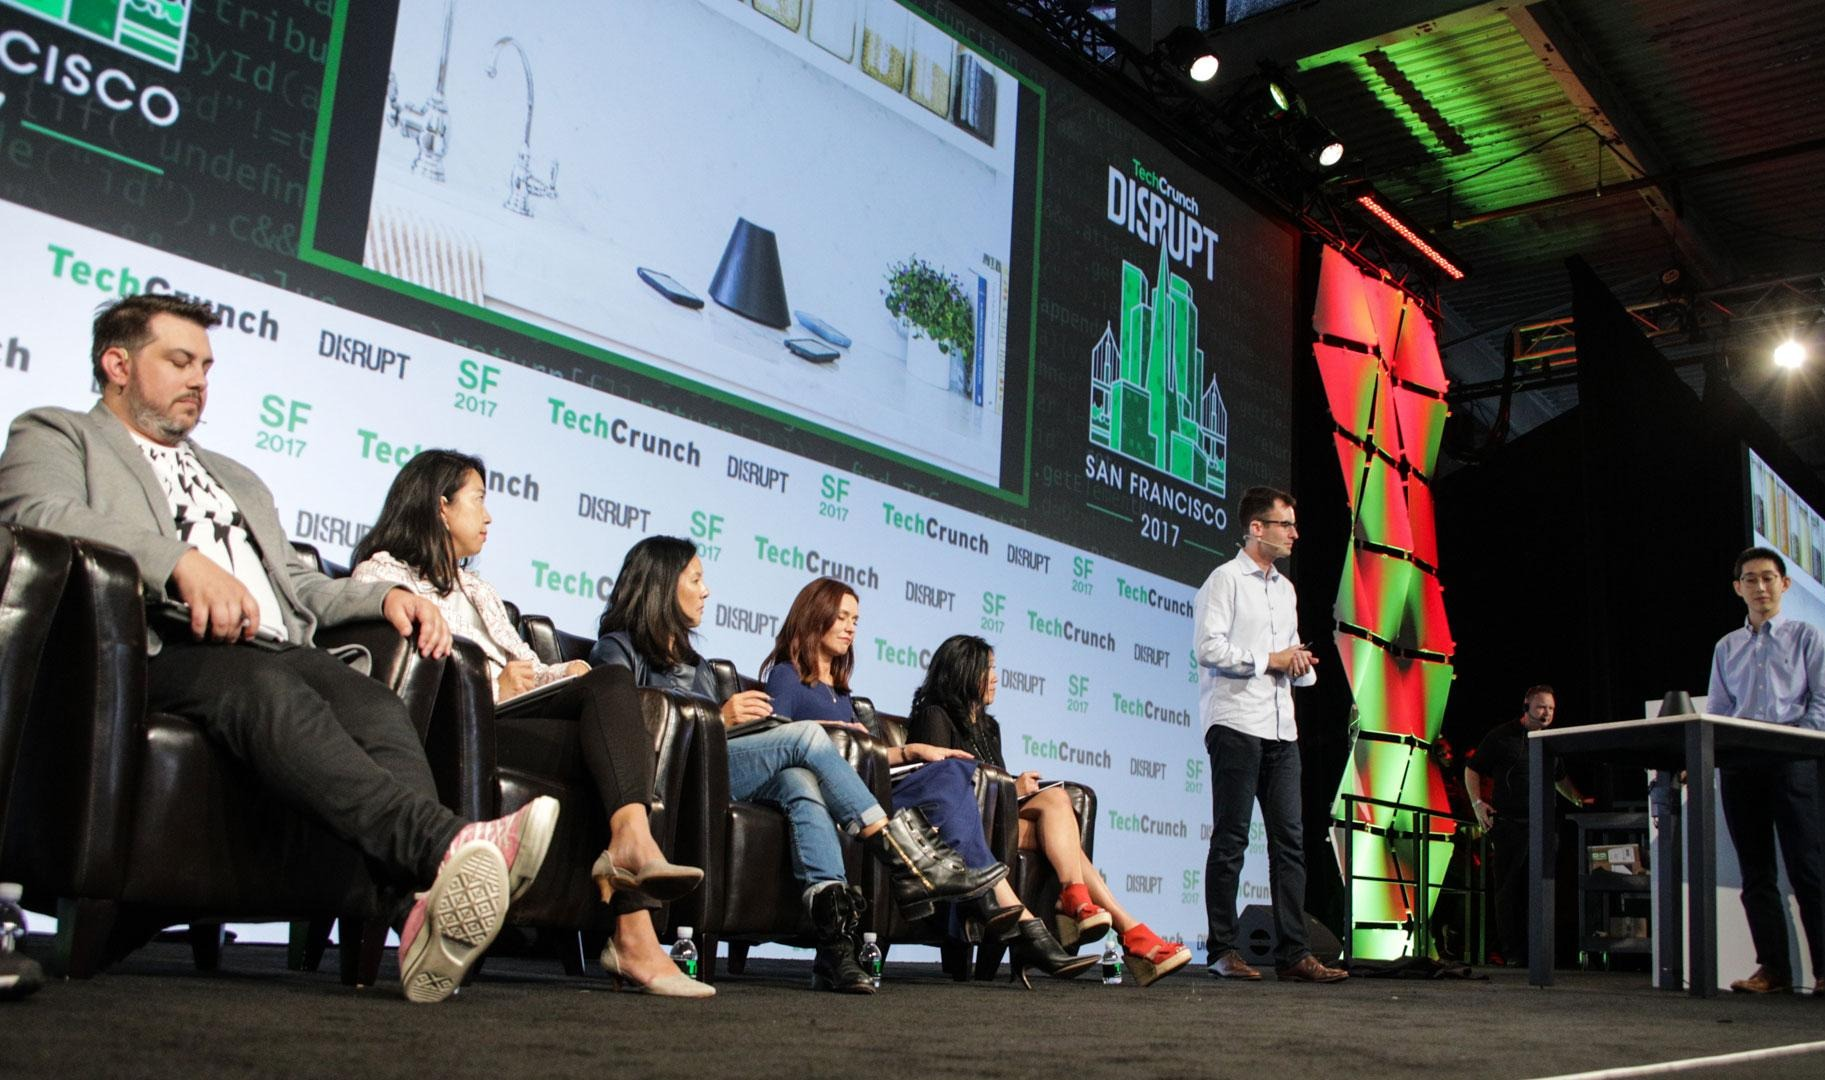 speakers on stage at tech crunch disrupt